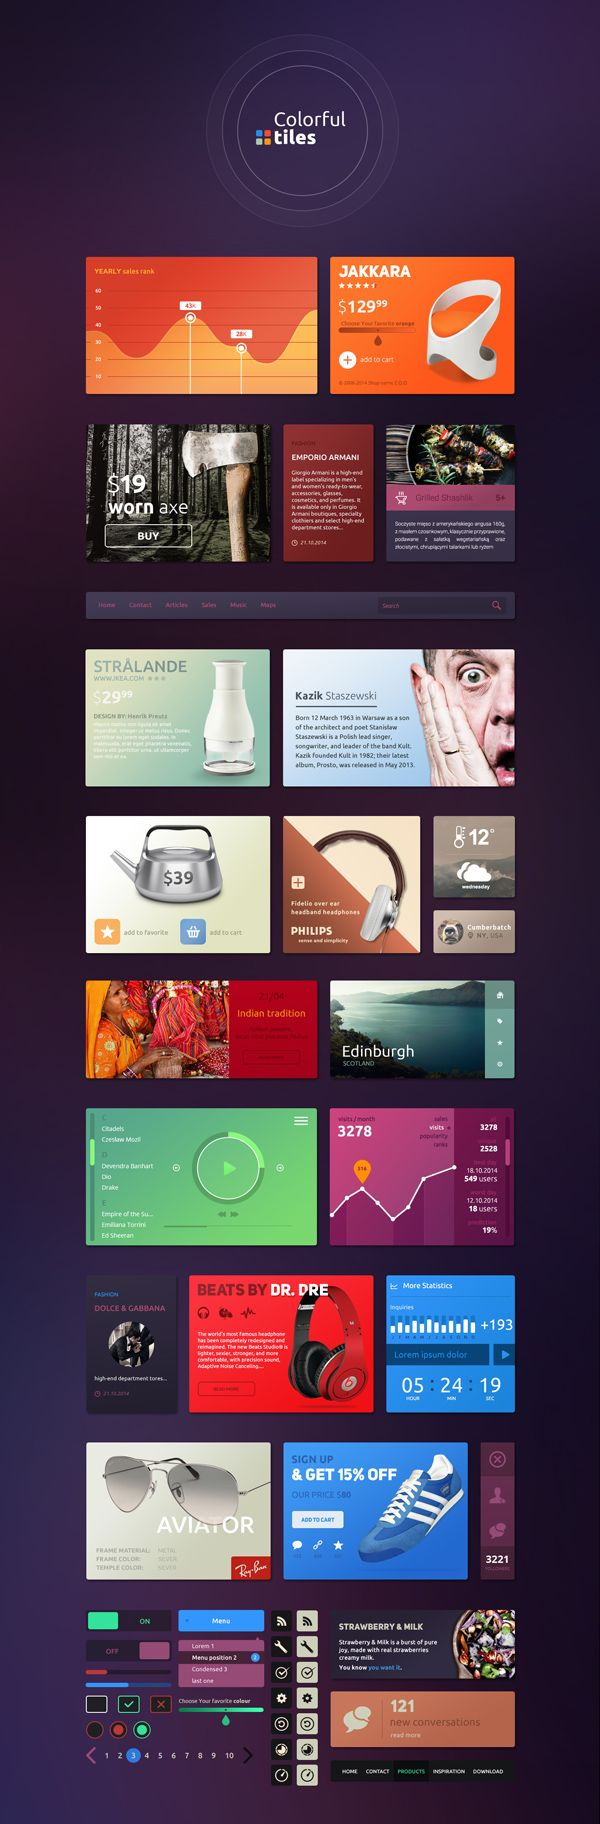 Check out the featured freebie of the day, a vibrant, eye-catching UI kit that you can use freely to create your...